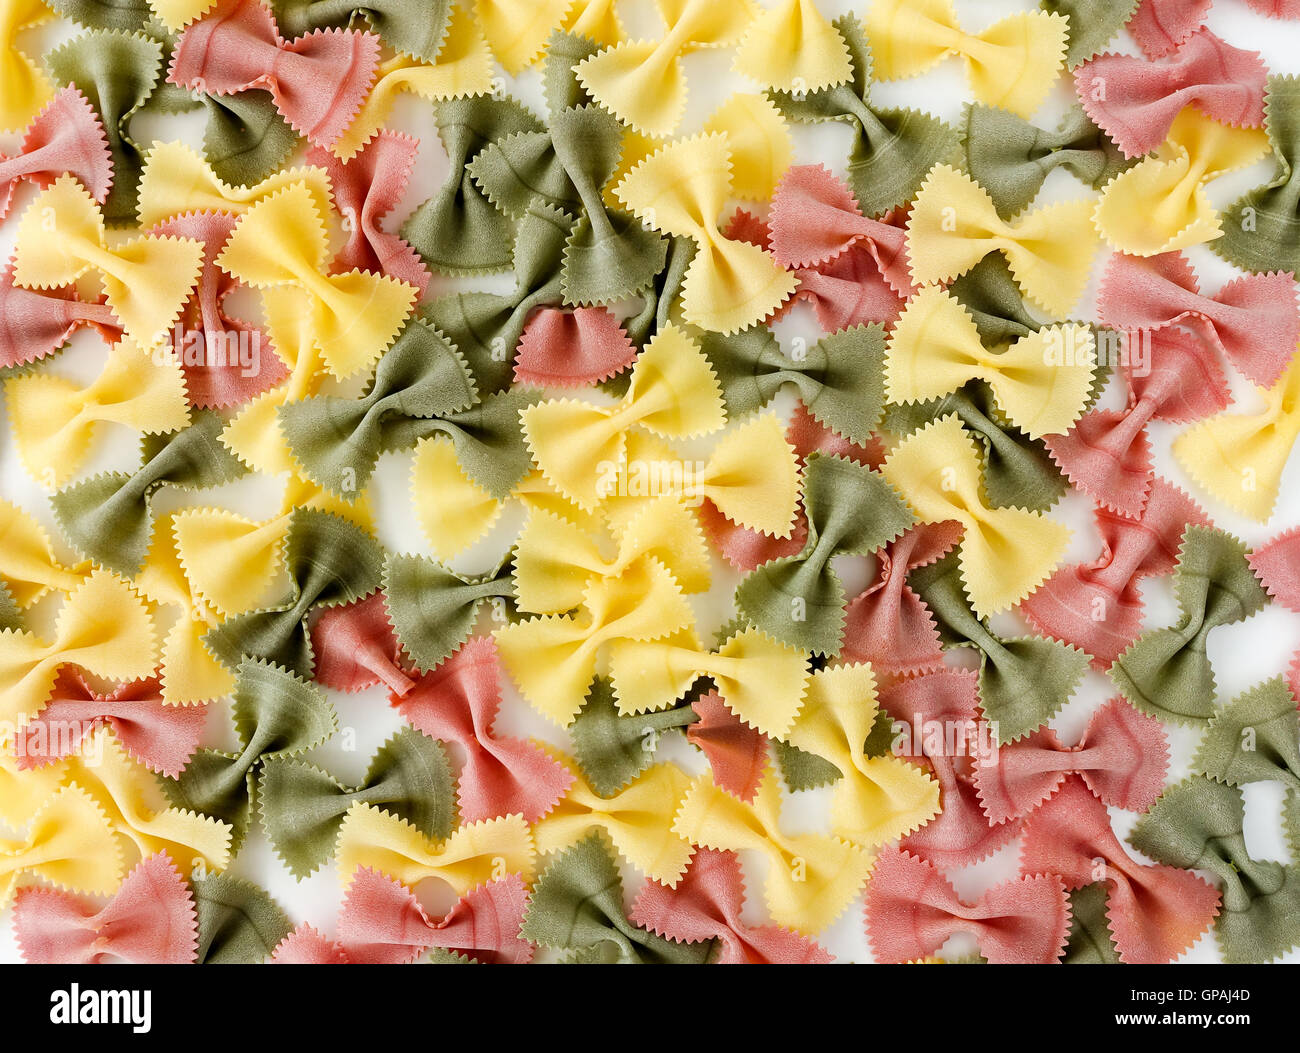 Multicolored Farfalle Pasta on White Background Stock Photo